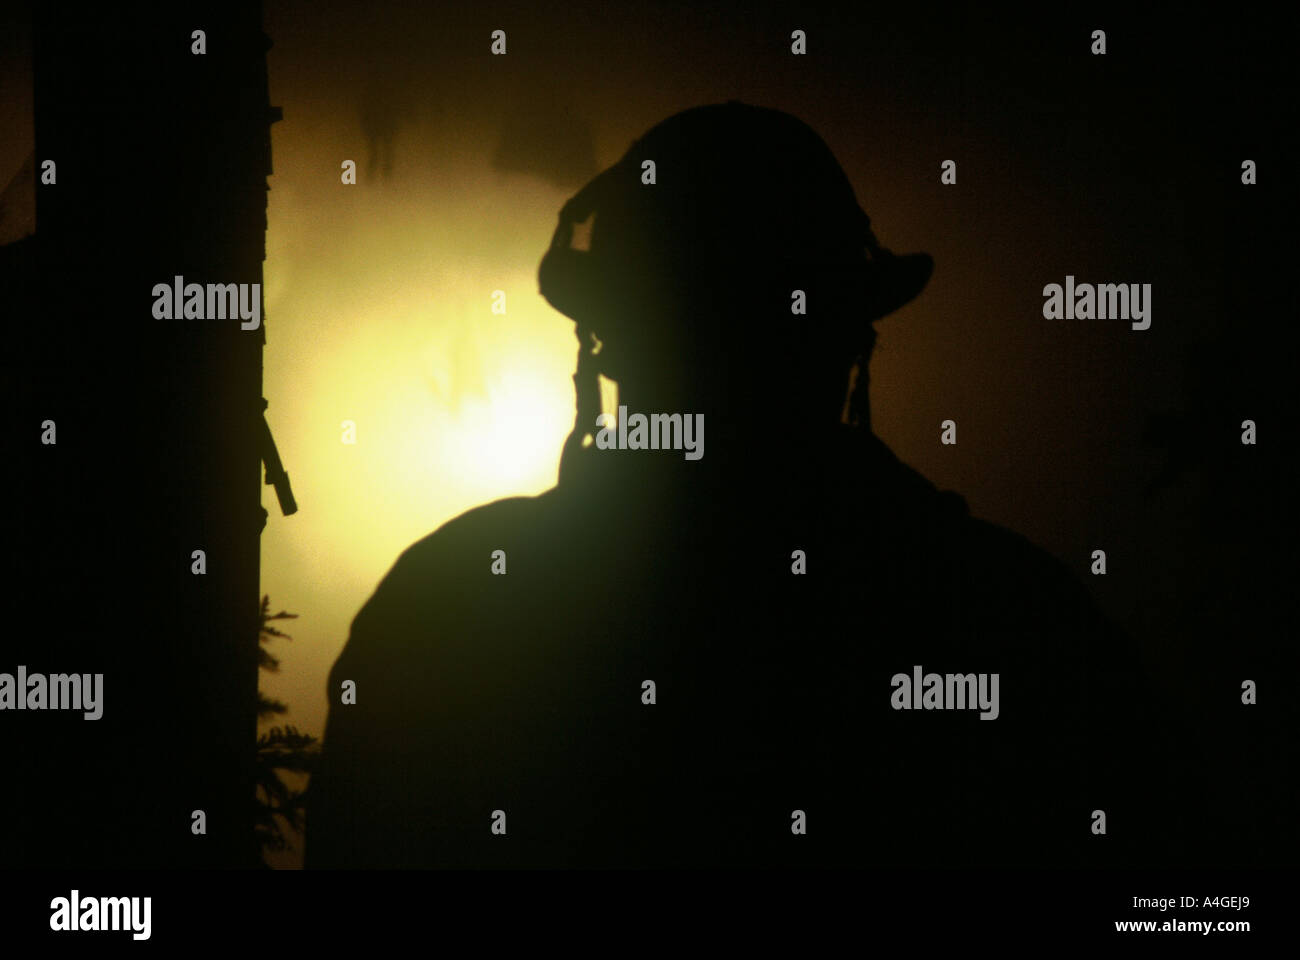 Life In Dark Holes Stock Photos Images Onefire Clover Night Lamp A Fire Fighter Silhouetted With Helmet Smoke And Light At Scene